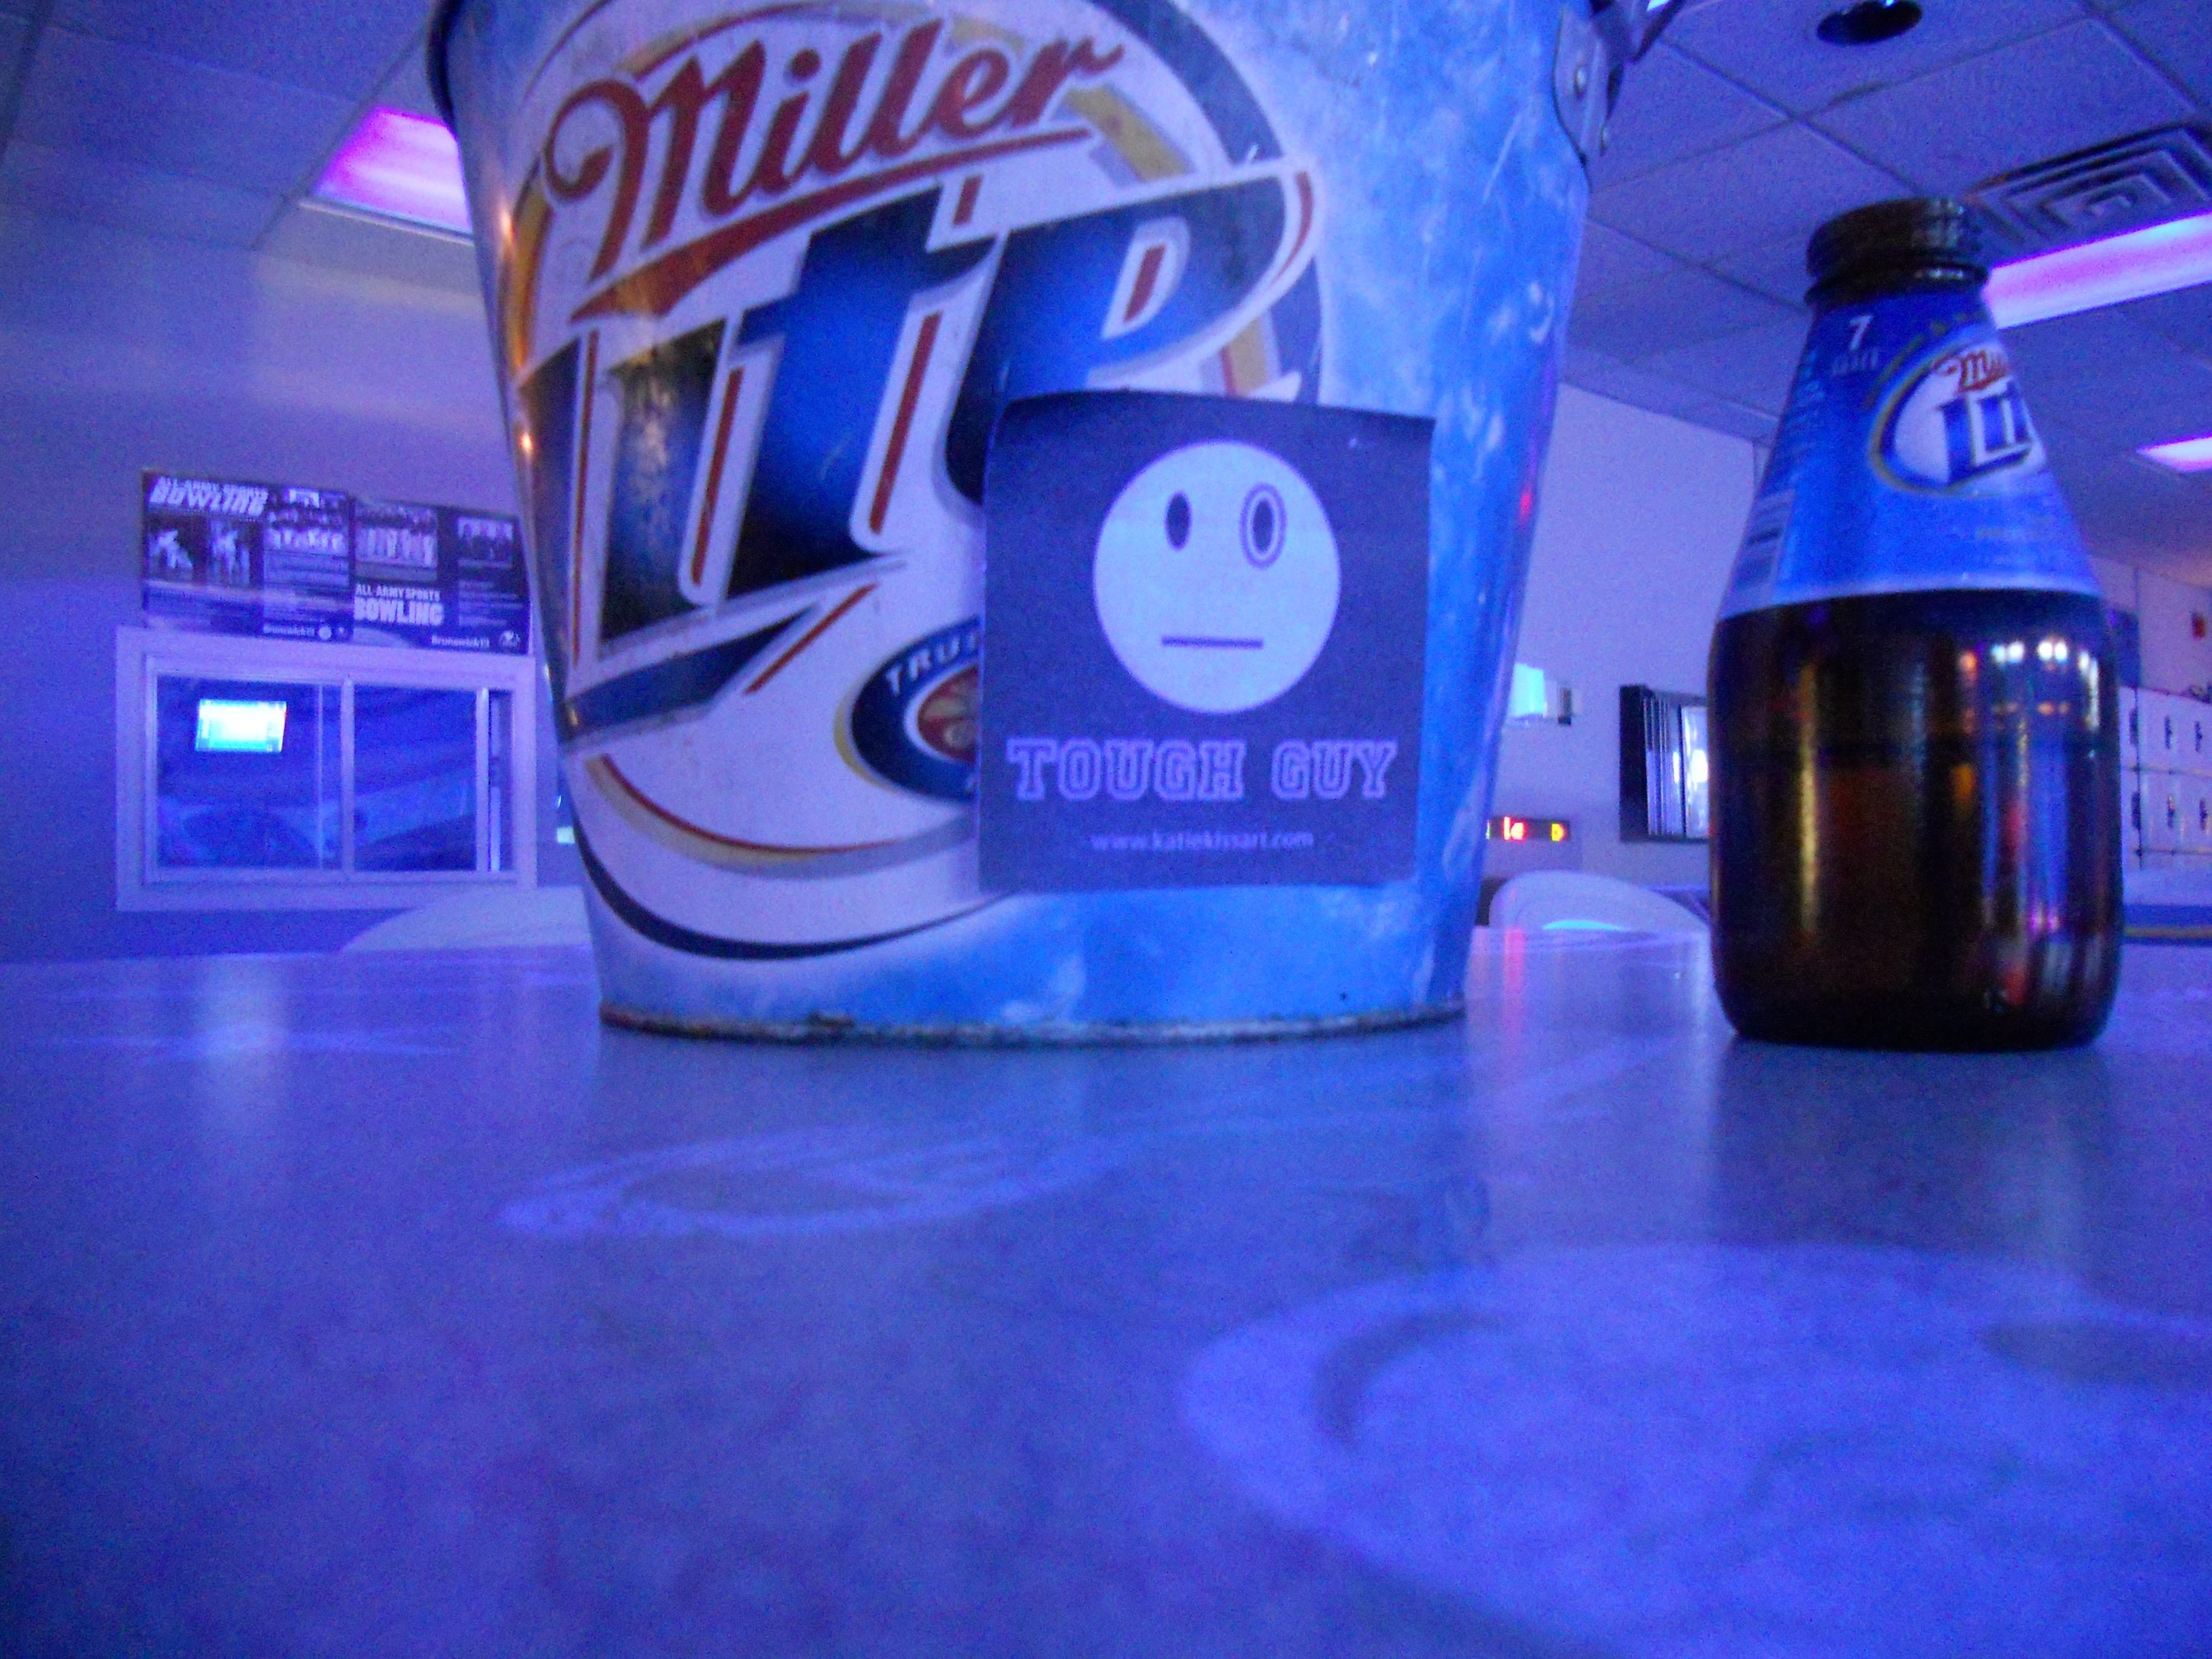 Fort Meyers' Bowling Alley